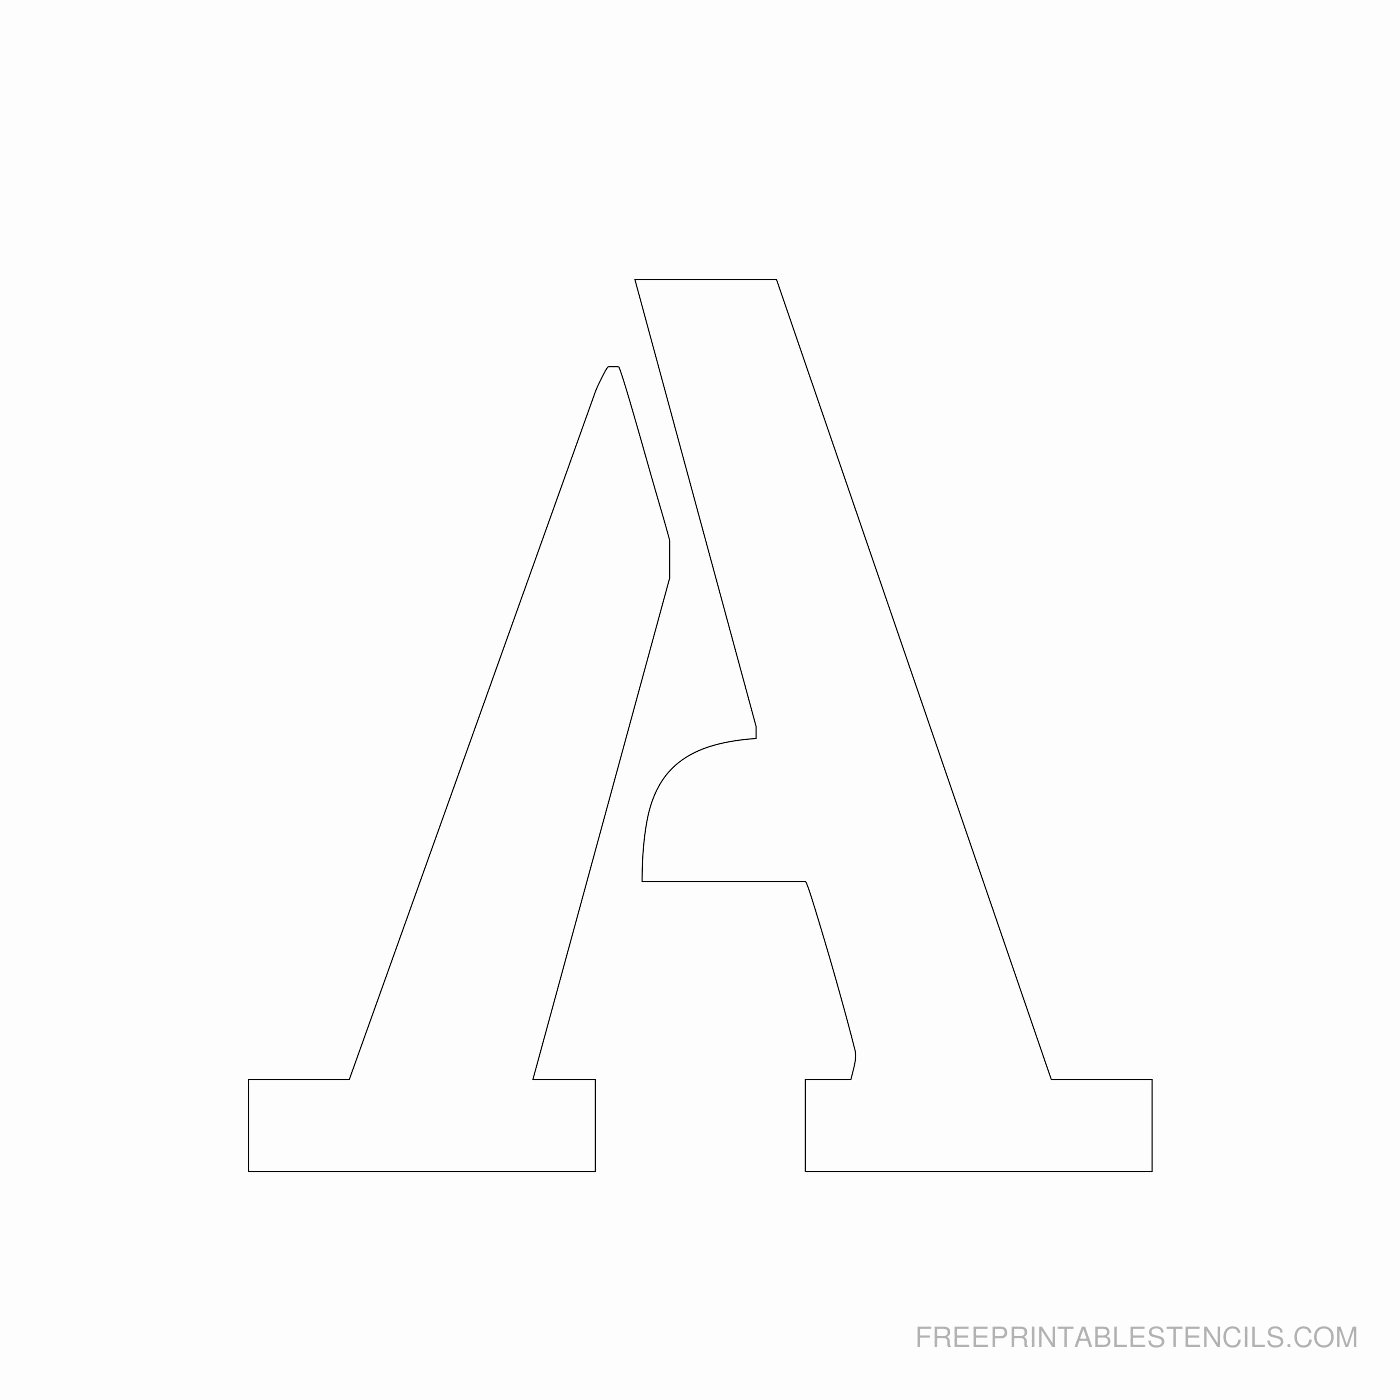 Letter A Printable Fresh Printable 4 Inch Letter Stencils A Z